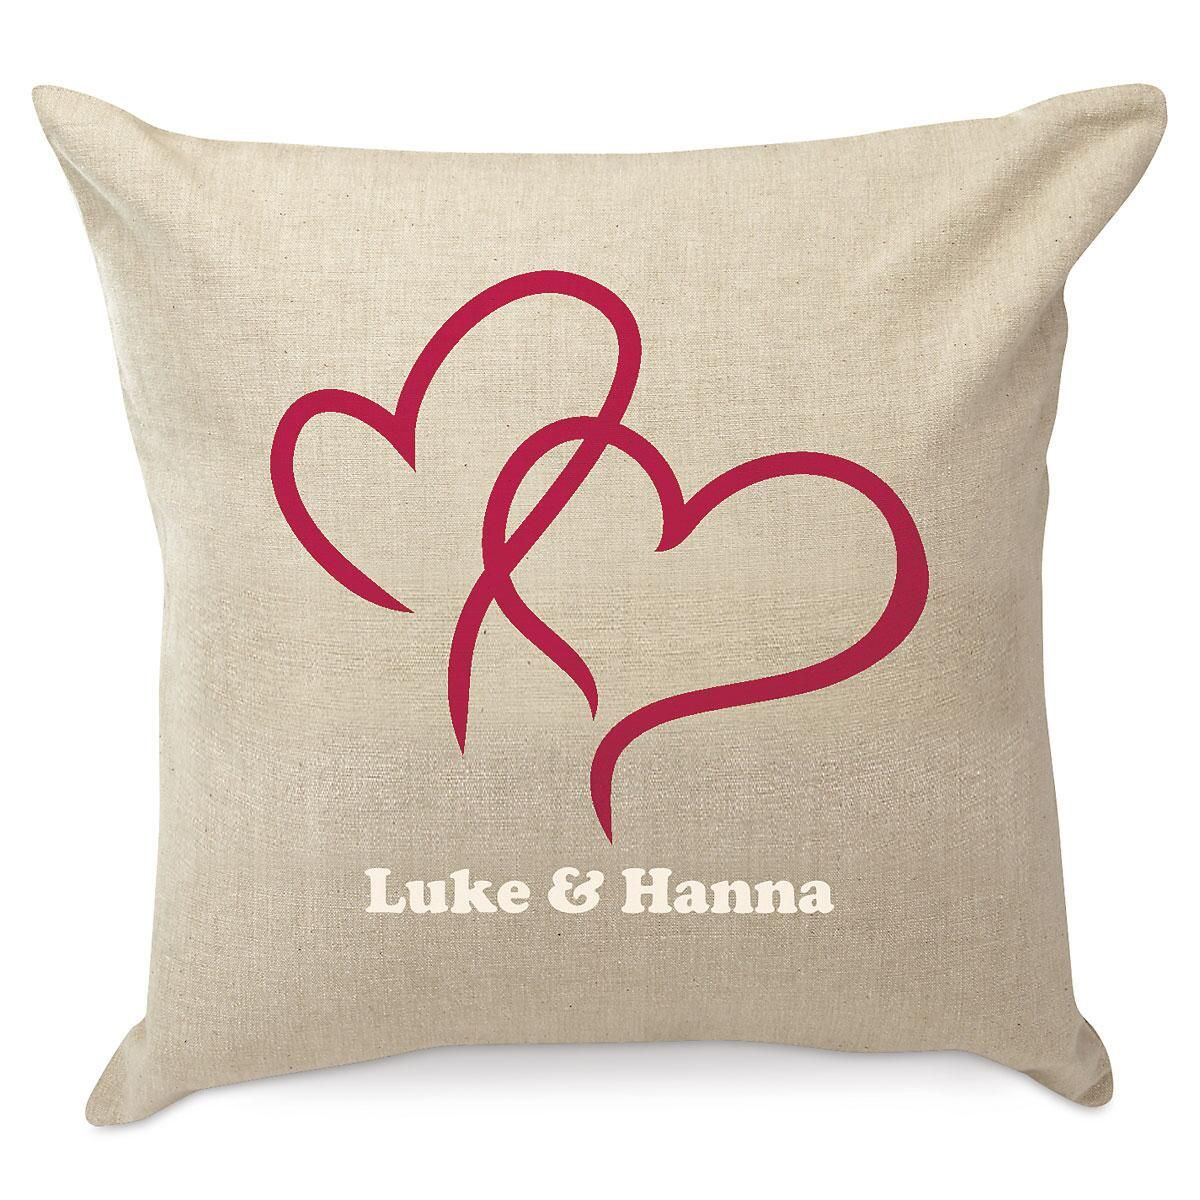 2 Hearts Burlap Decorative Pillow